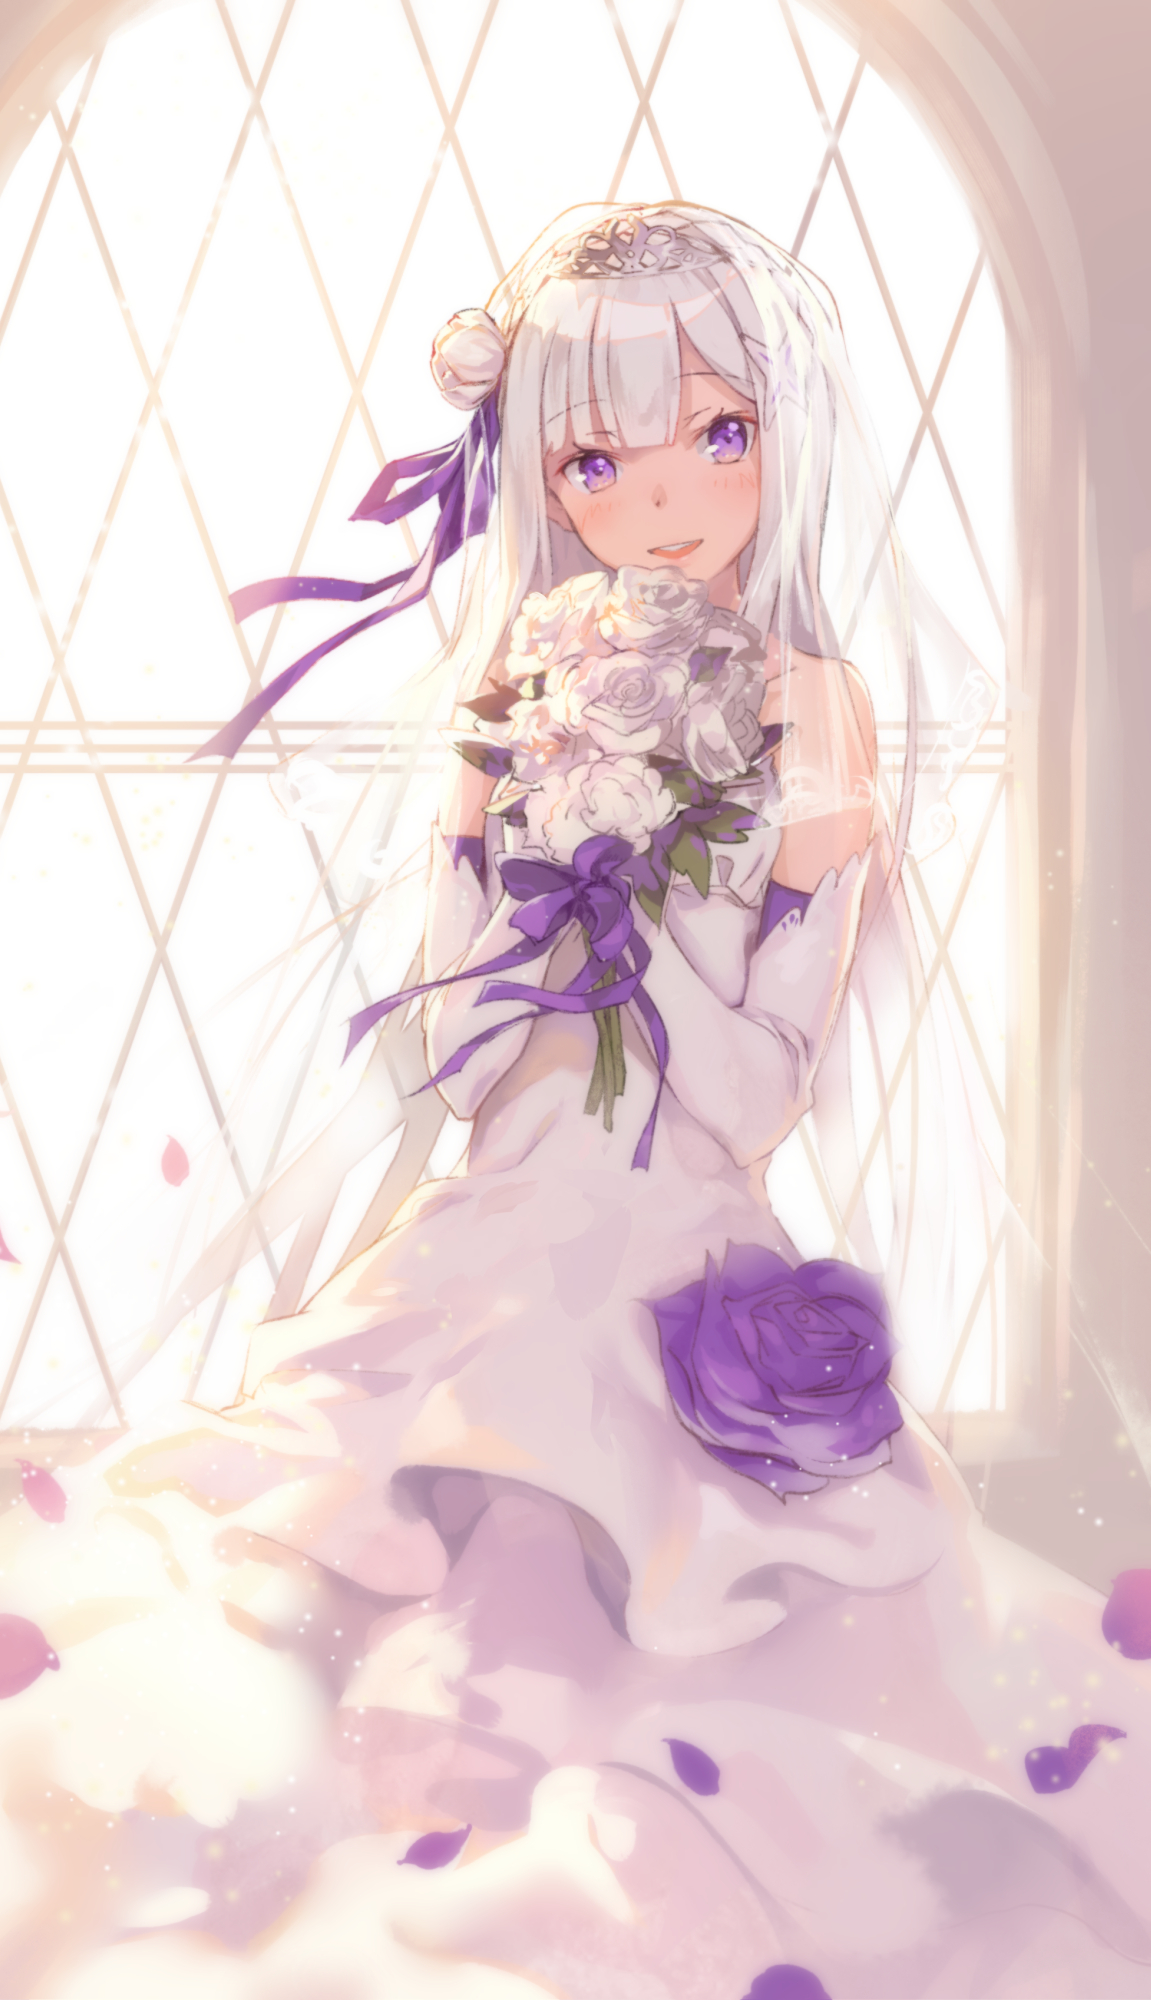 Emilia Re Zero Mobile Wallpaper Zerochan Anime Image Board